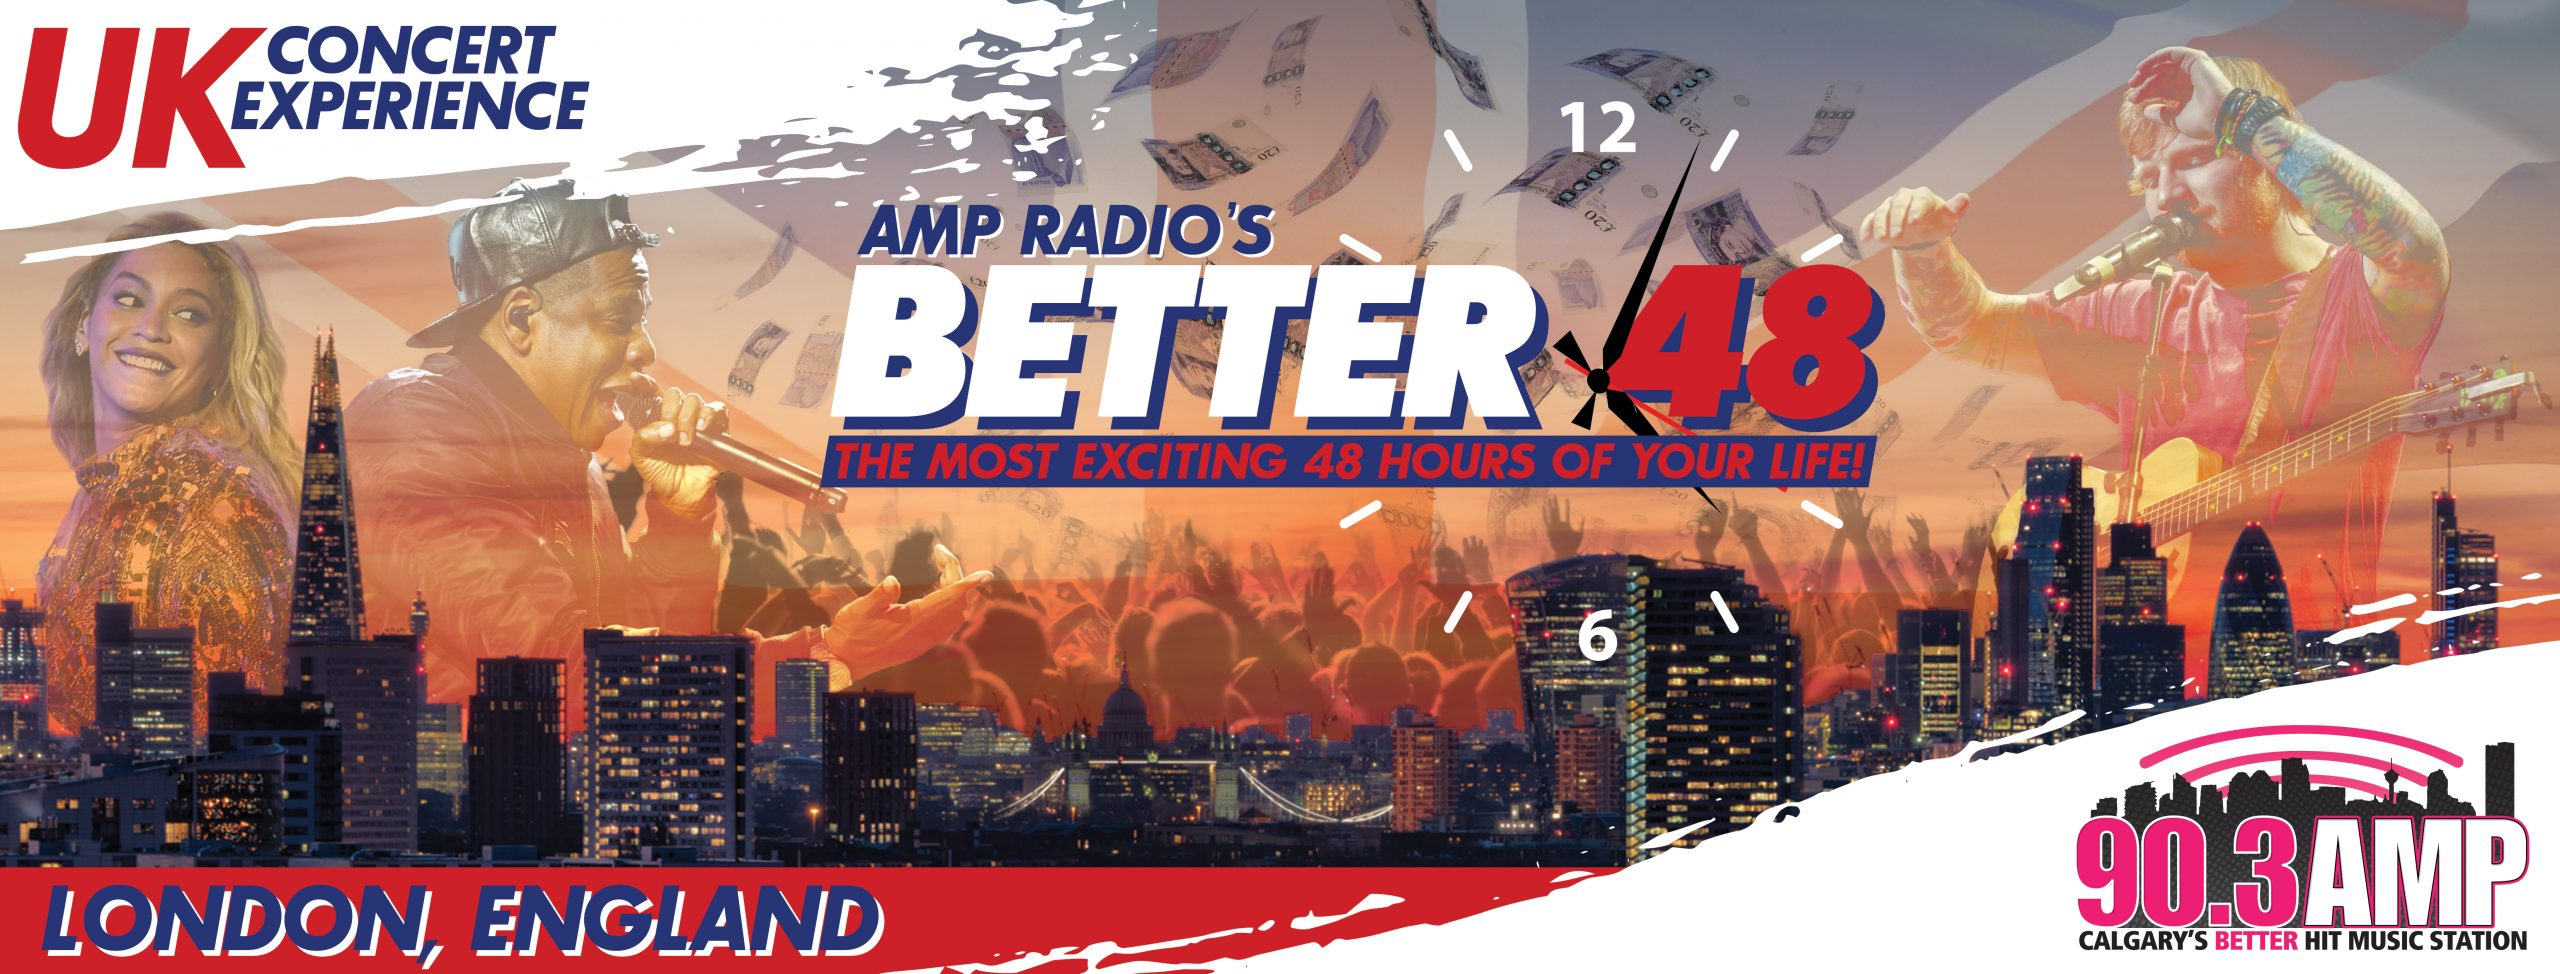 AMP Radio's Better 48 – UK Concert Experience